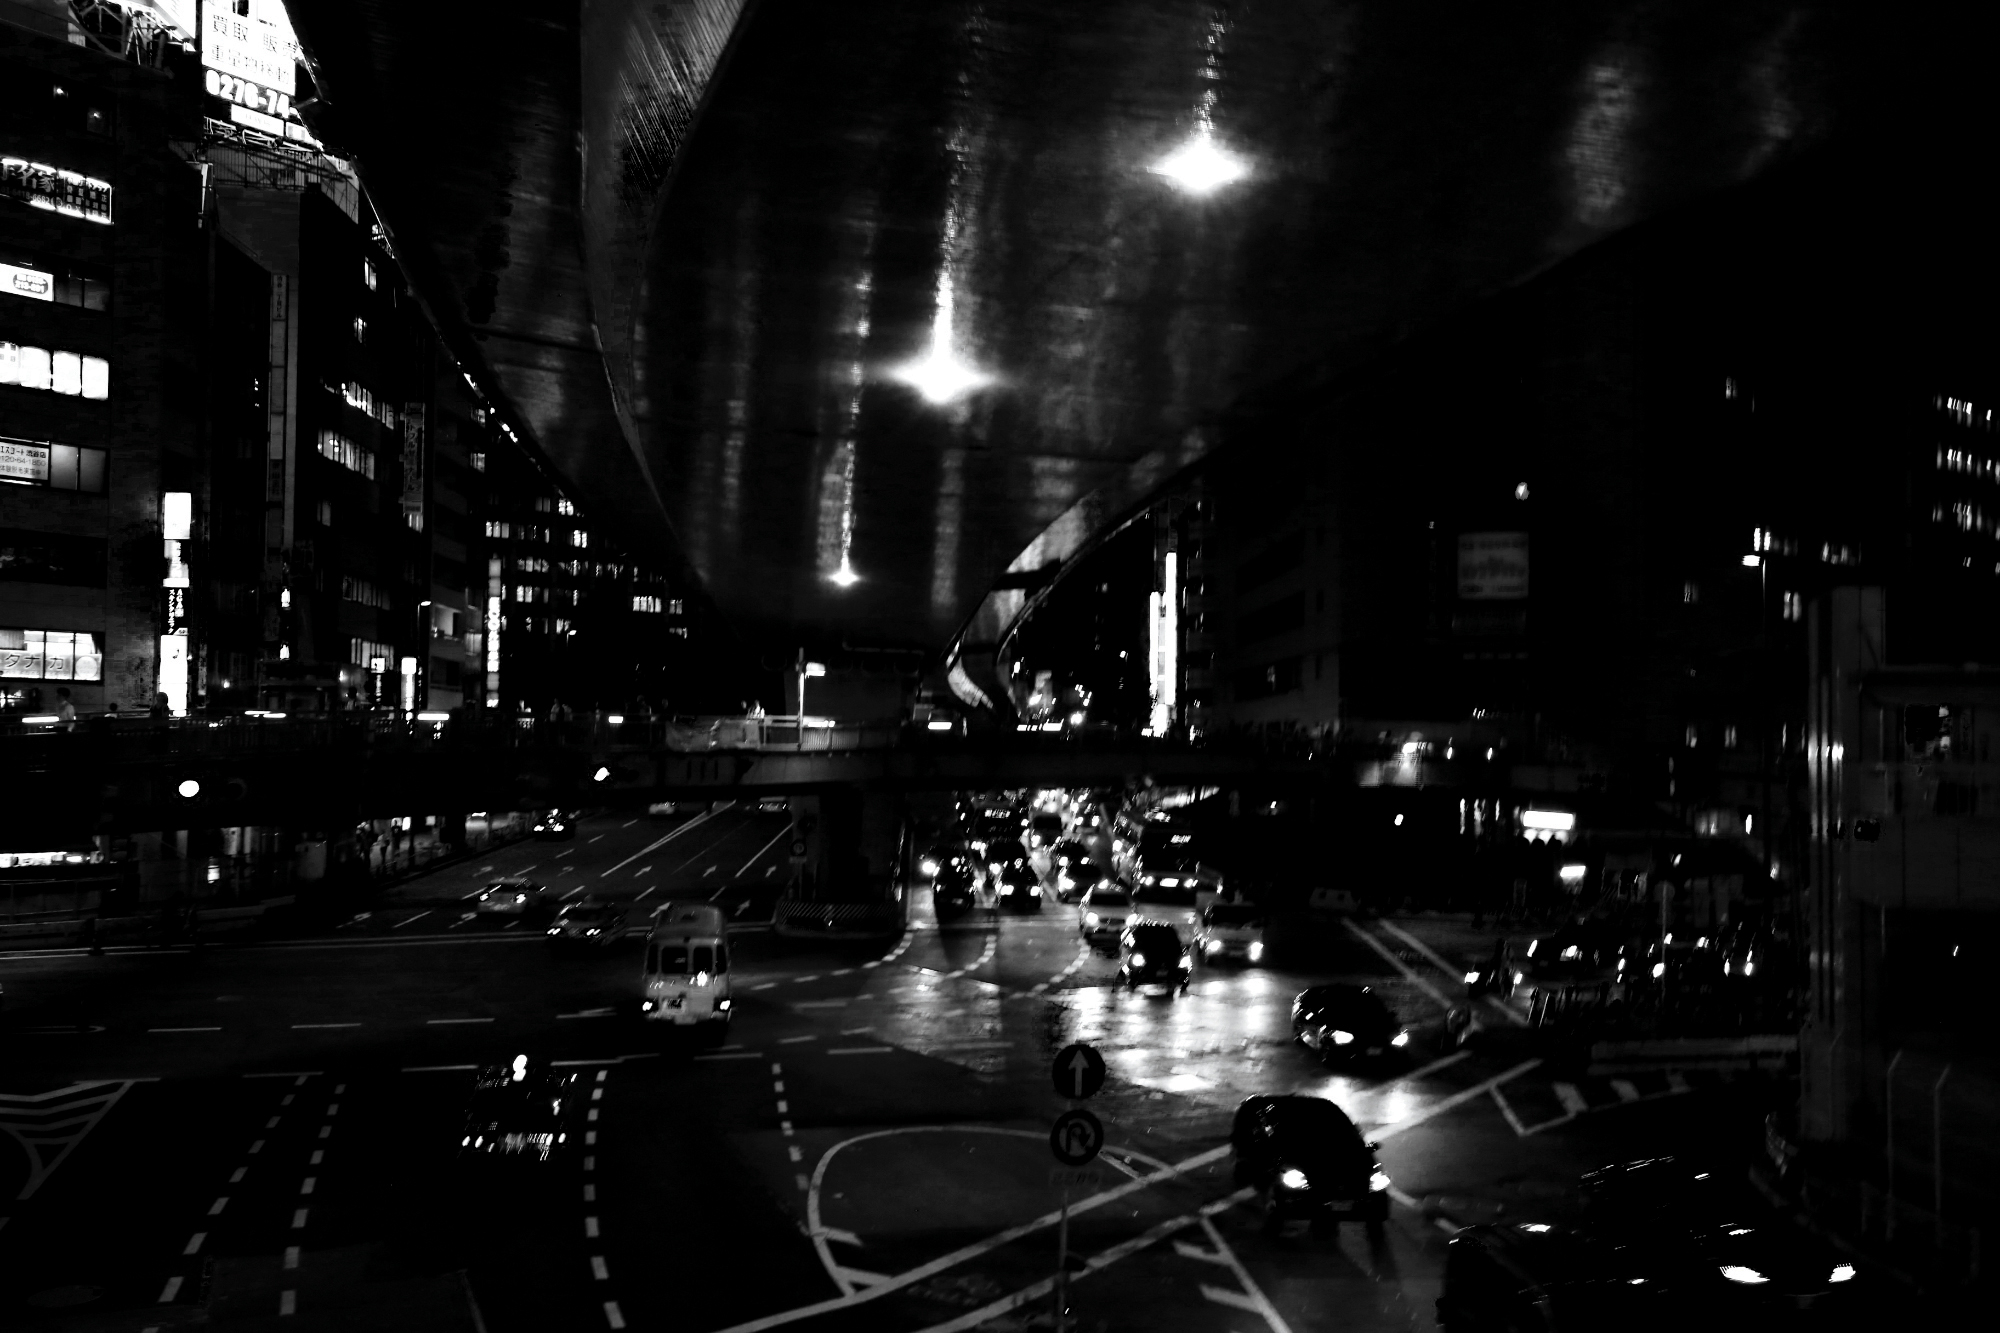 Timeless, black and white, moody, image of a street with cars driving down it at night. Taken in Tokyo, Japan